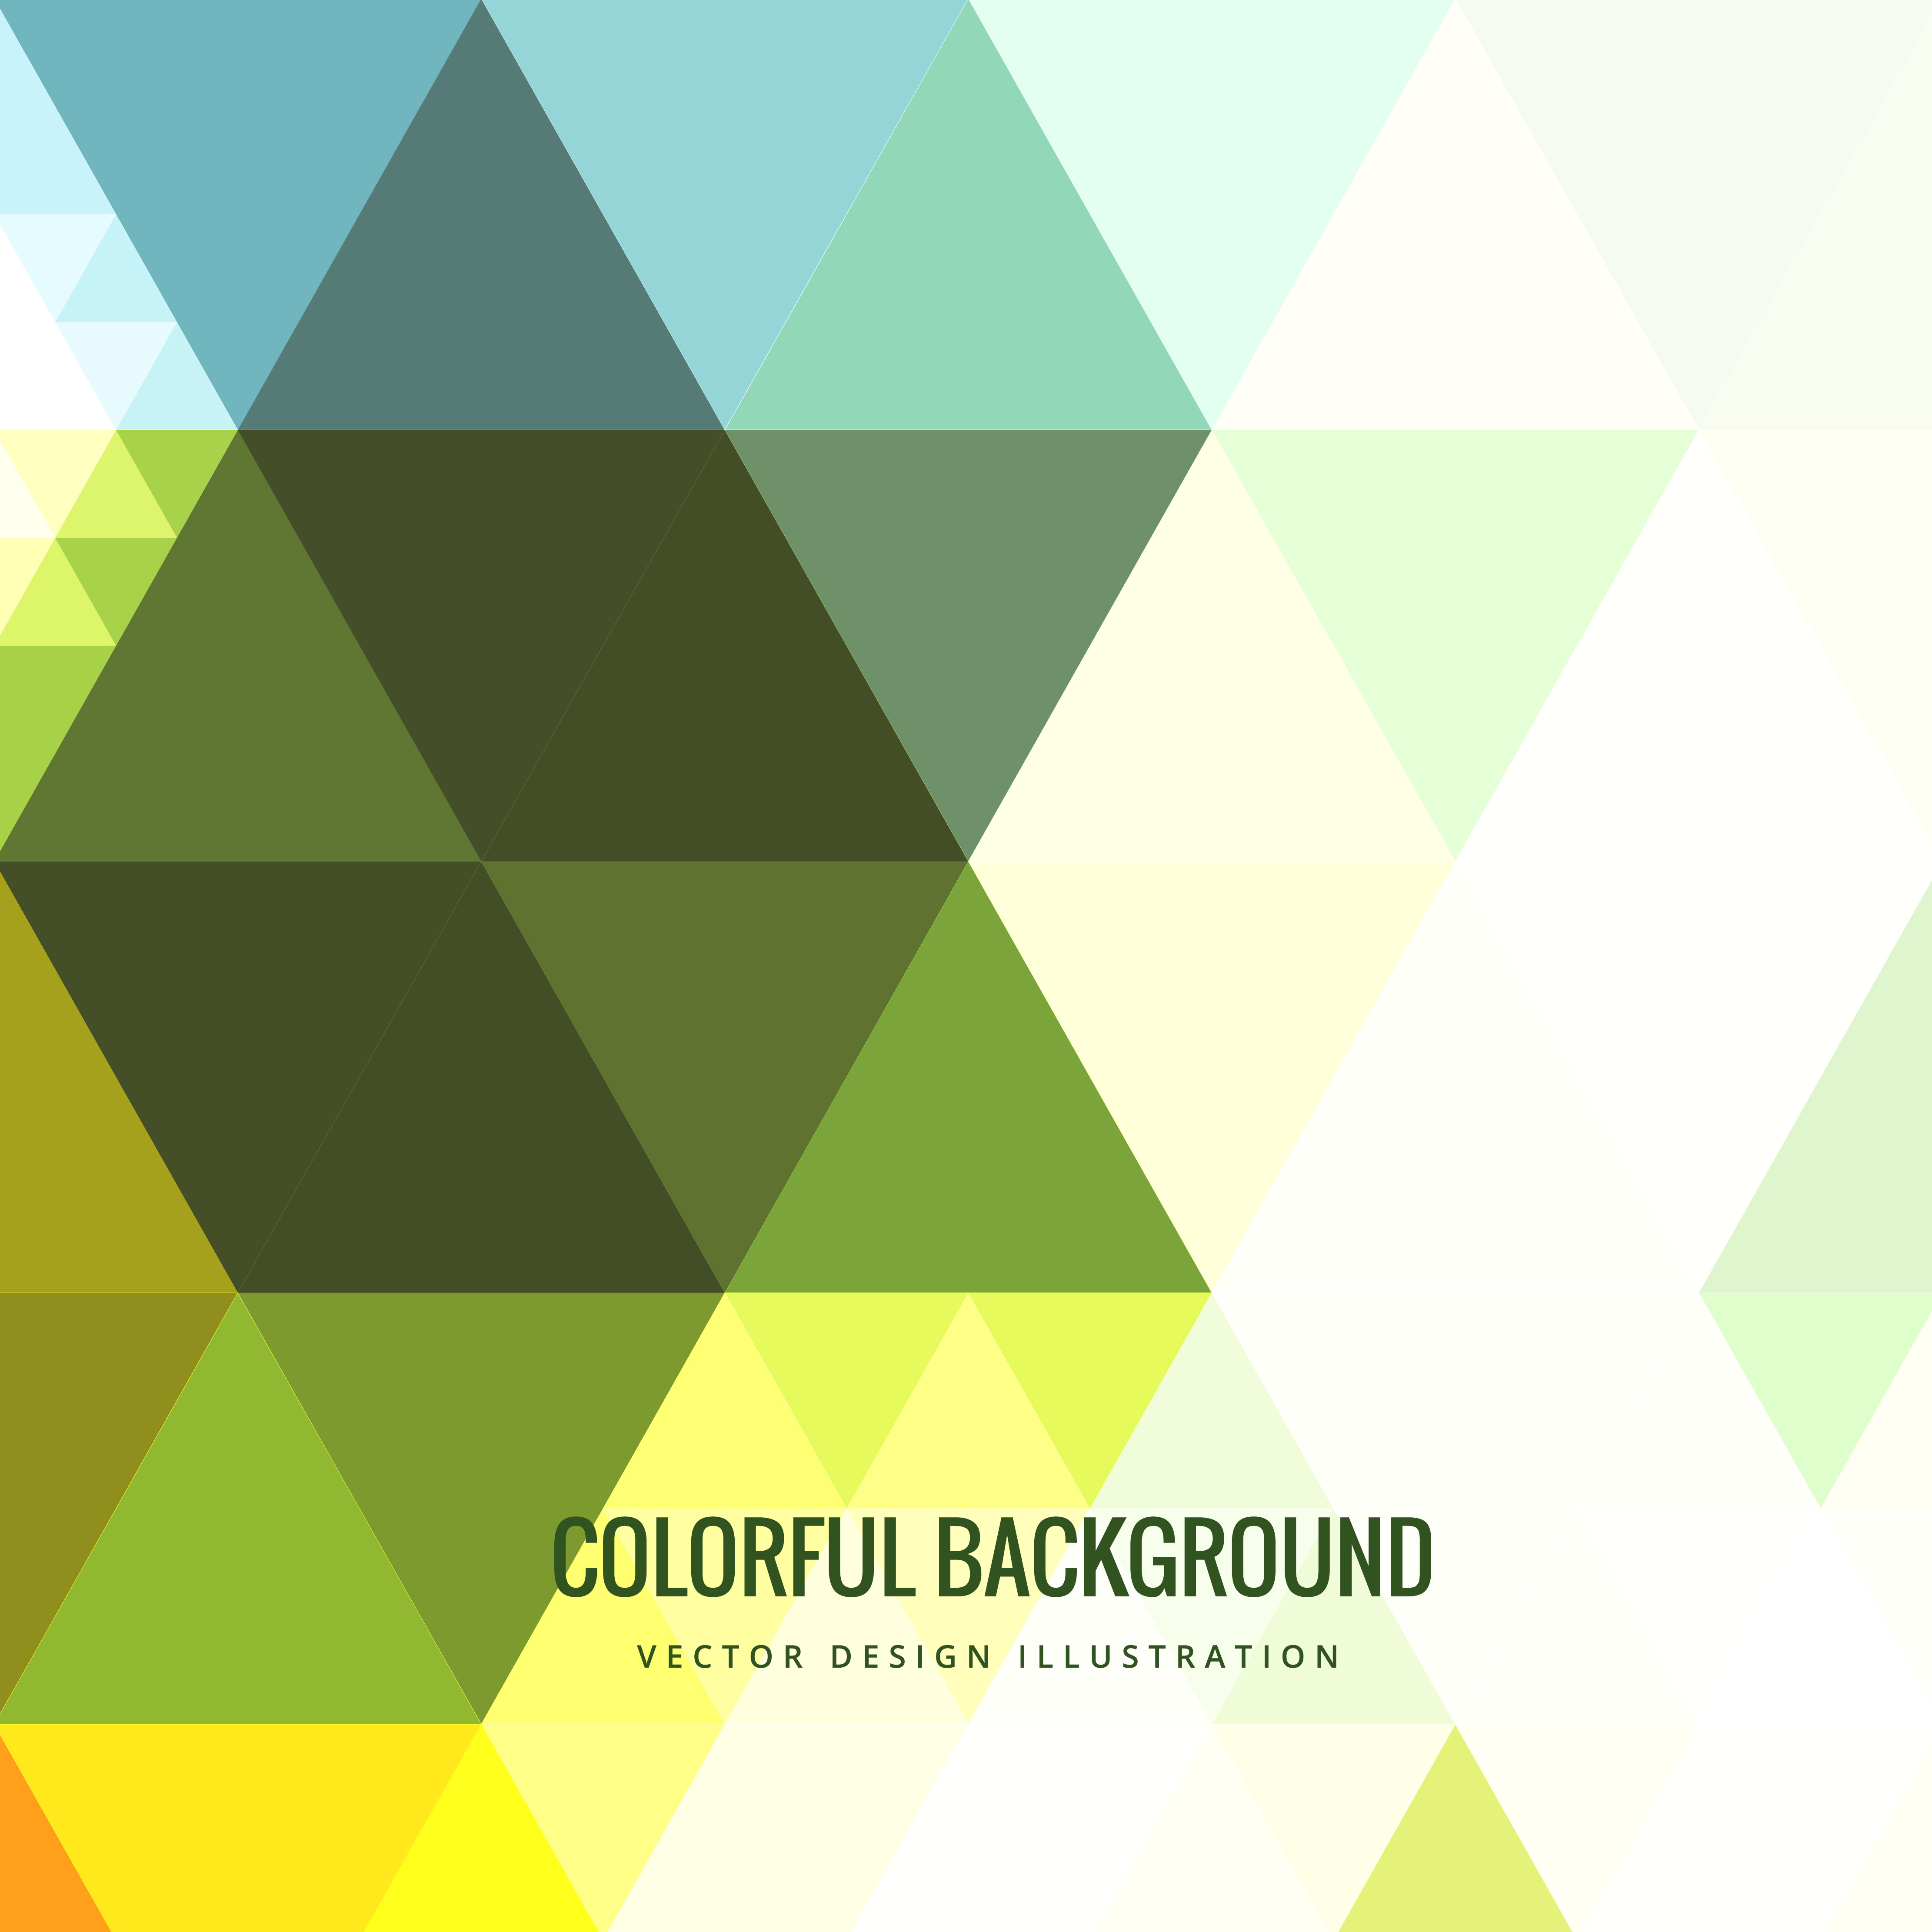 Colorful Triangle Background Download Free Vector Art